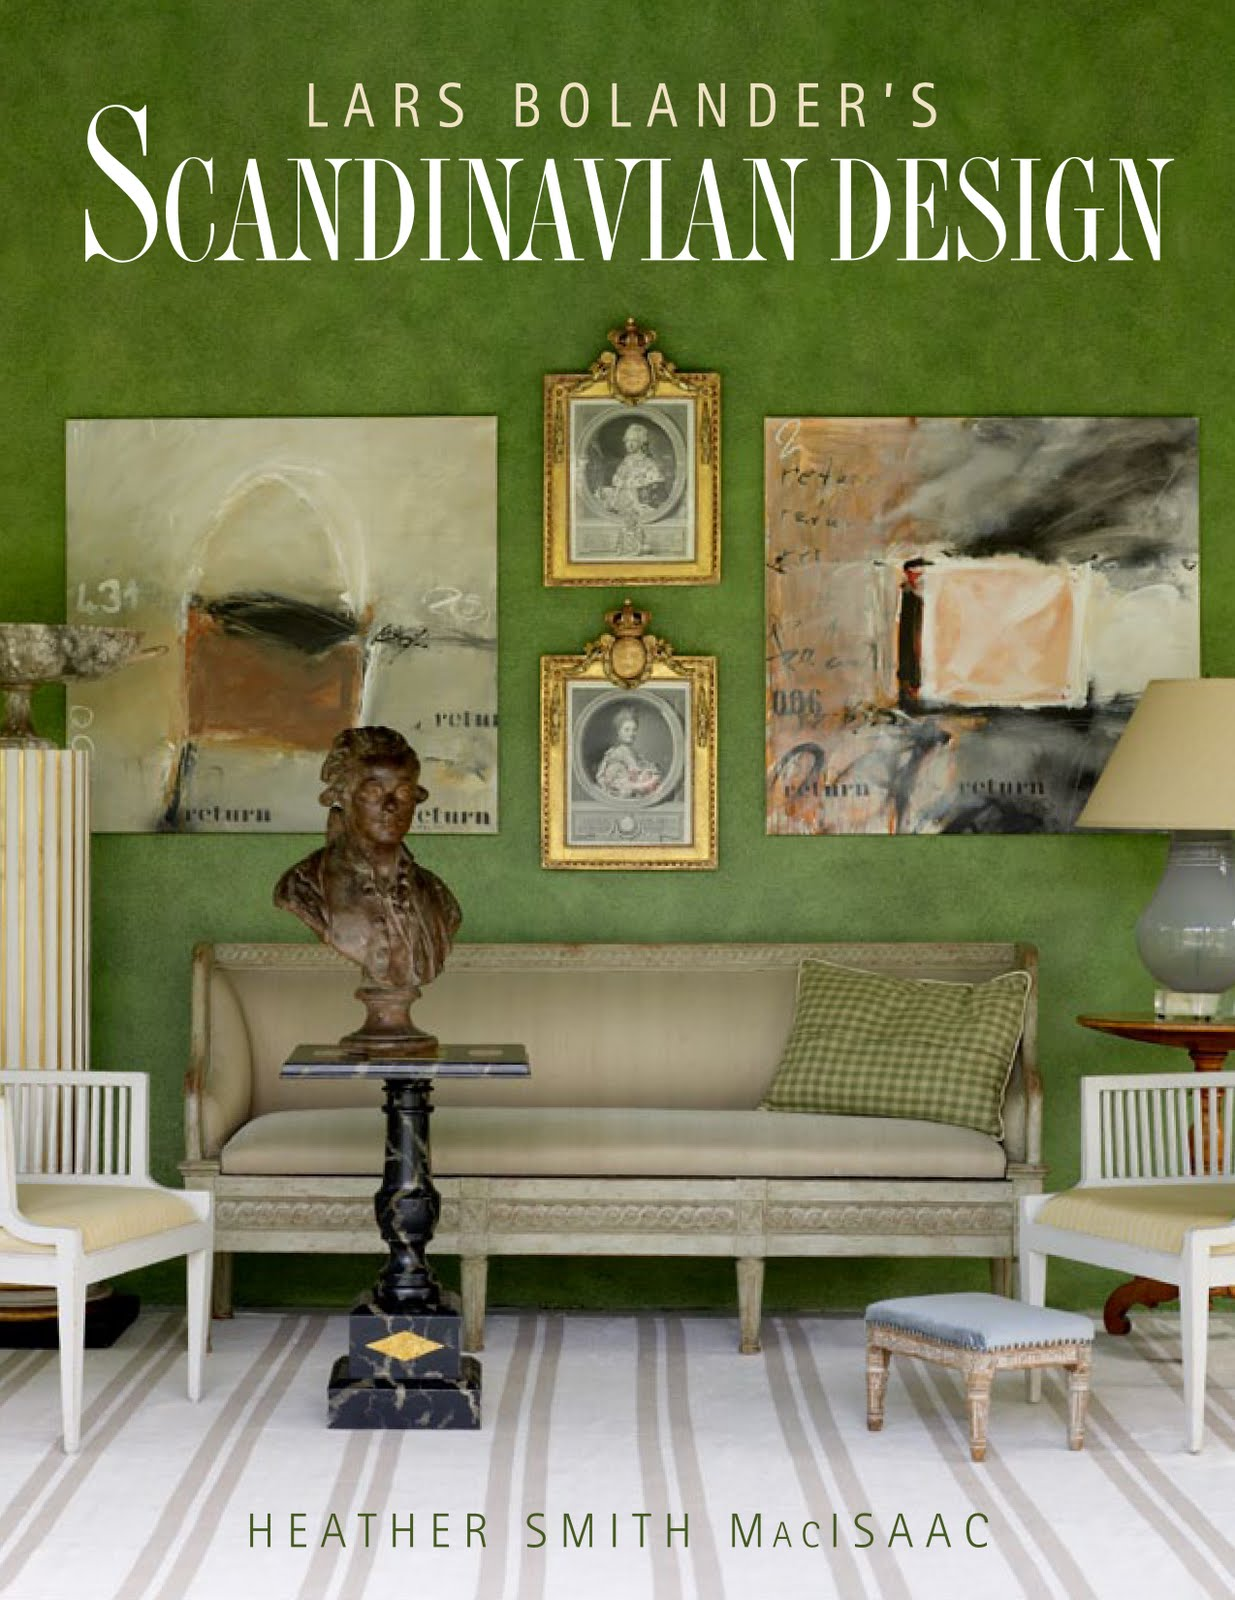 Scandinavian Interior Design Books Swedish Interiors By Eleish Van Breems Lars Bolander 39s